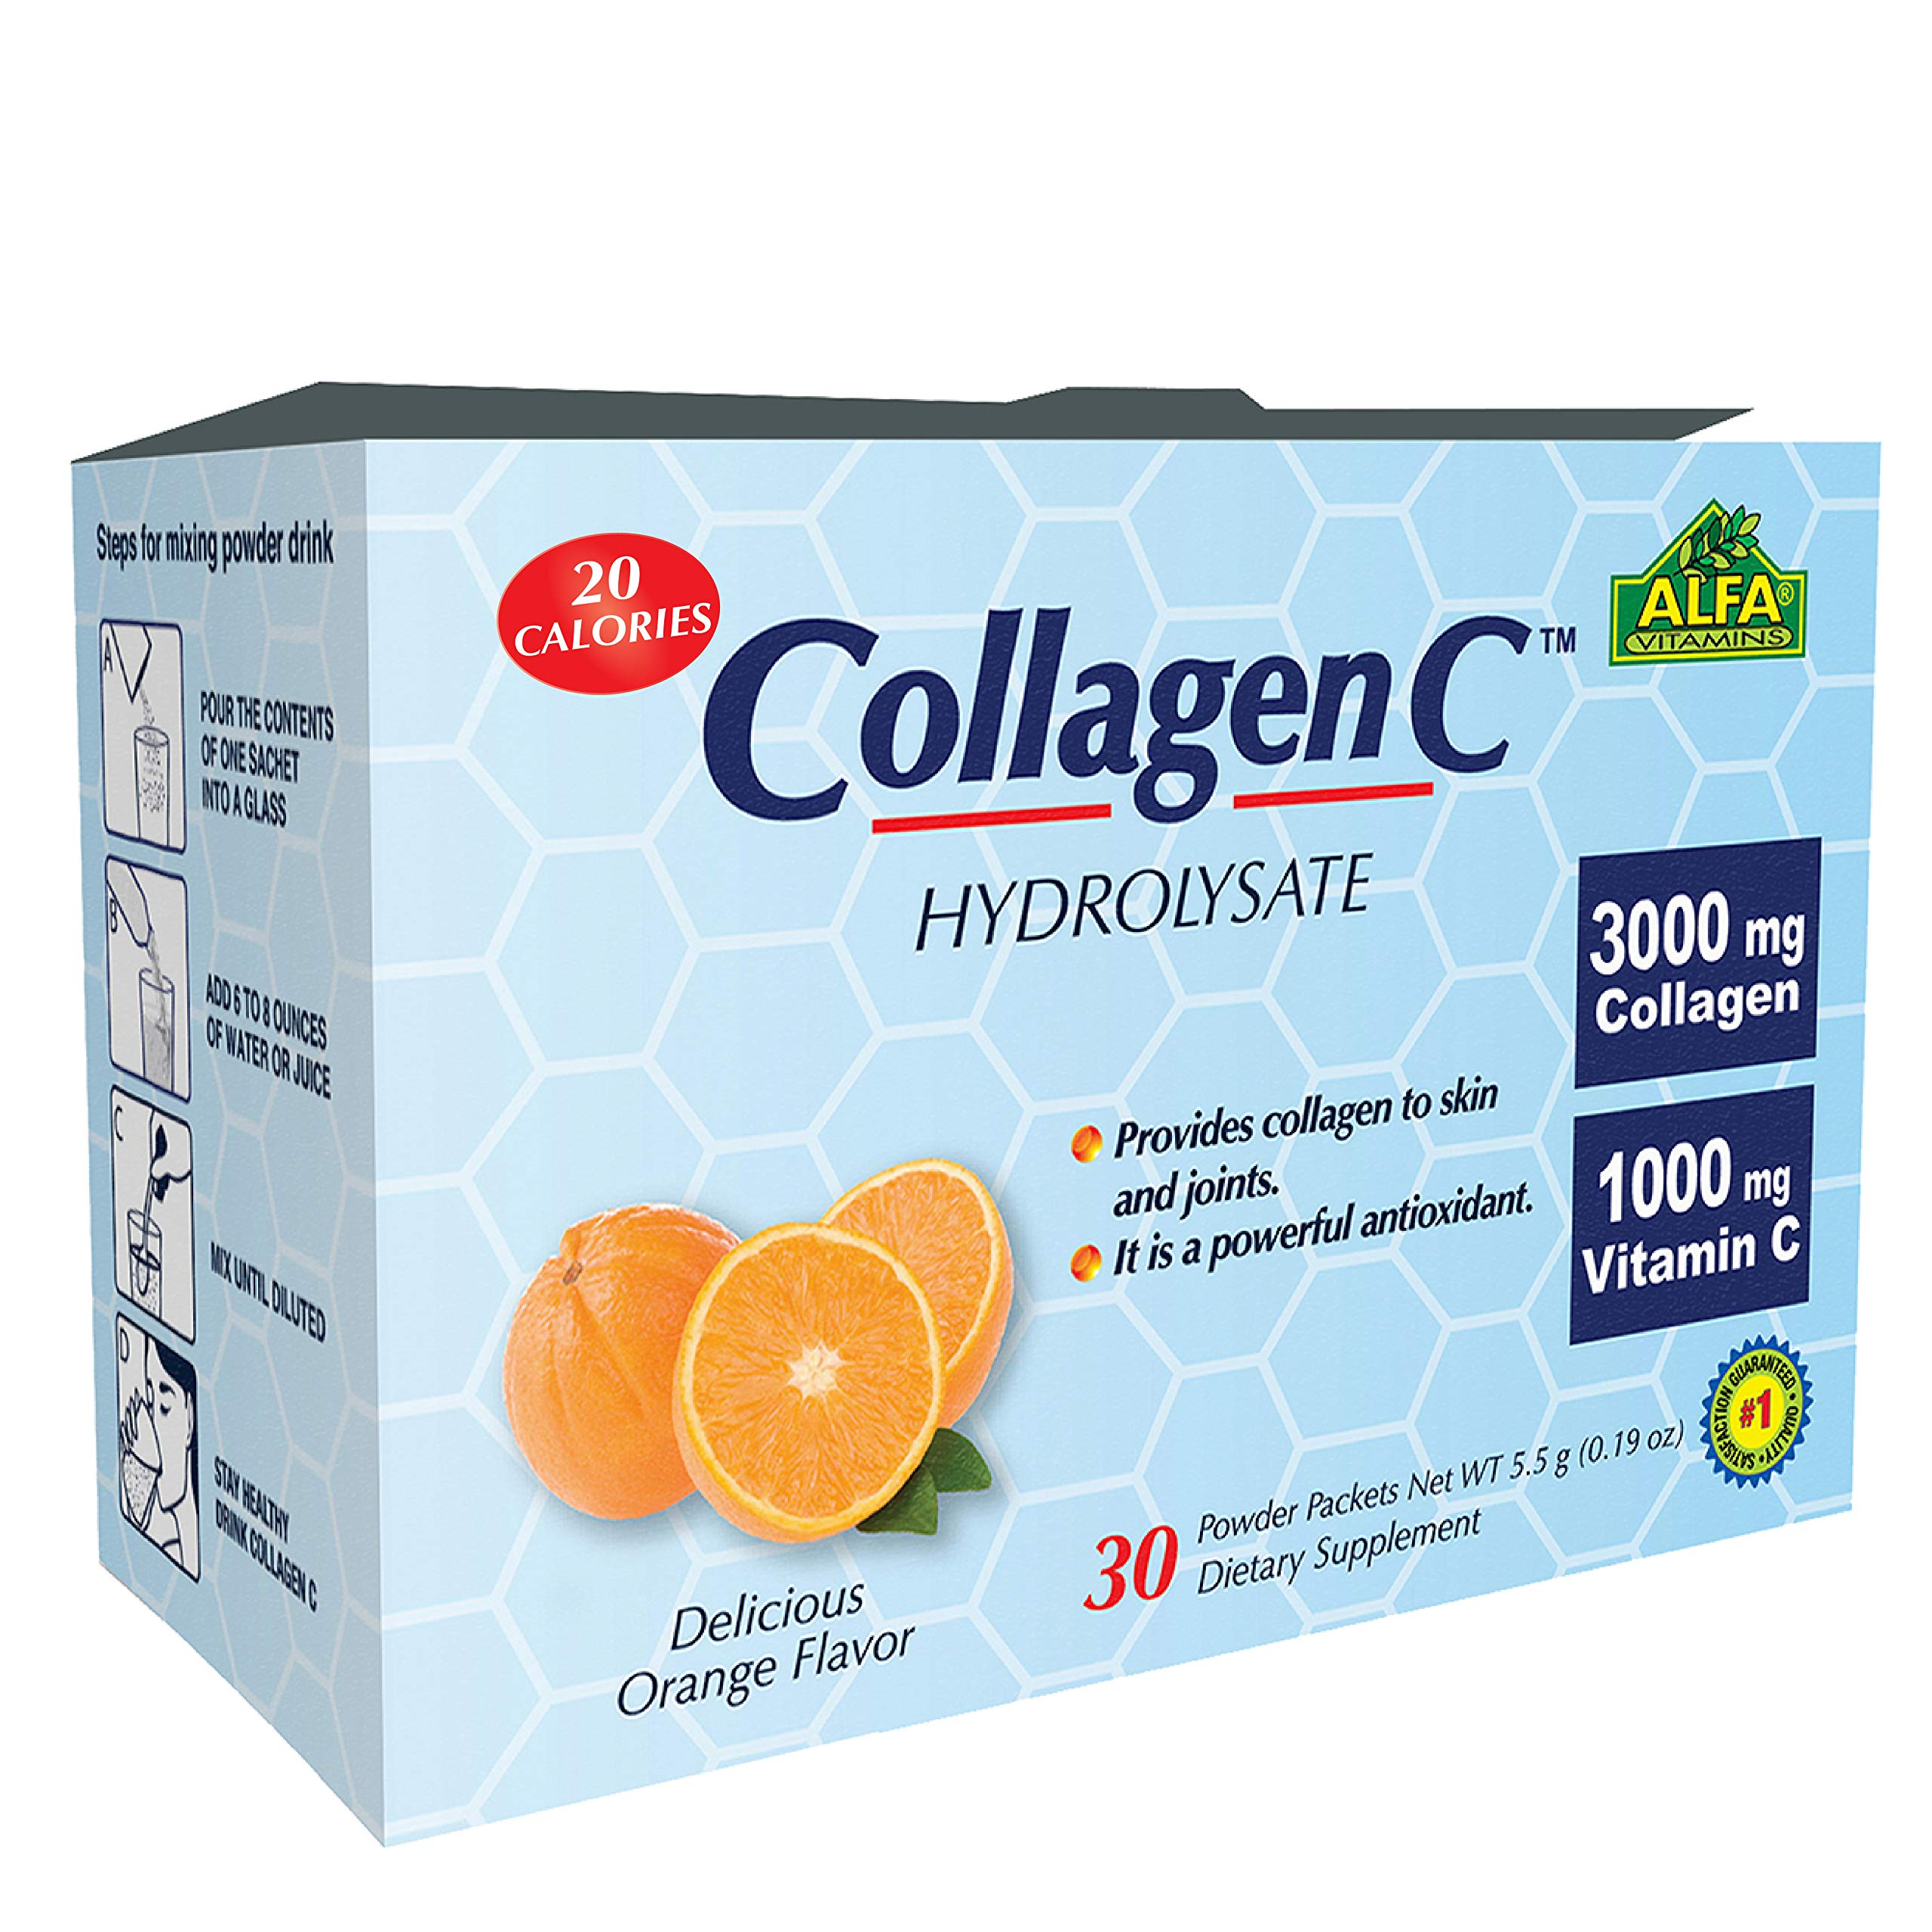 Amazon.com  Collagen Hydrolysate Powder Supplement By ALFA VITAMINS -  Premium Quality Source Of Nutrients a1c2ee1dbbe